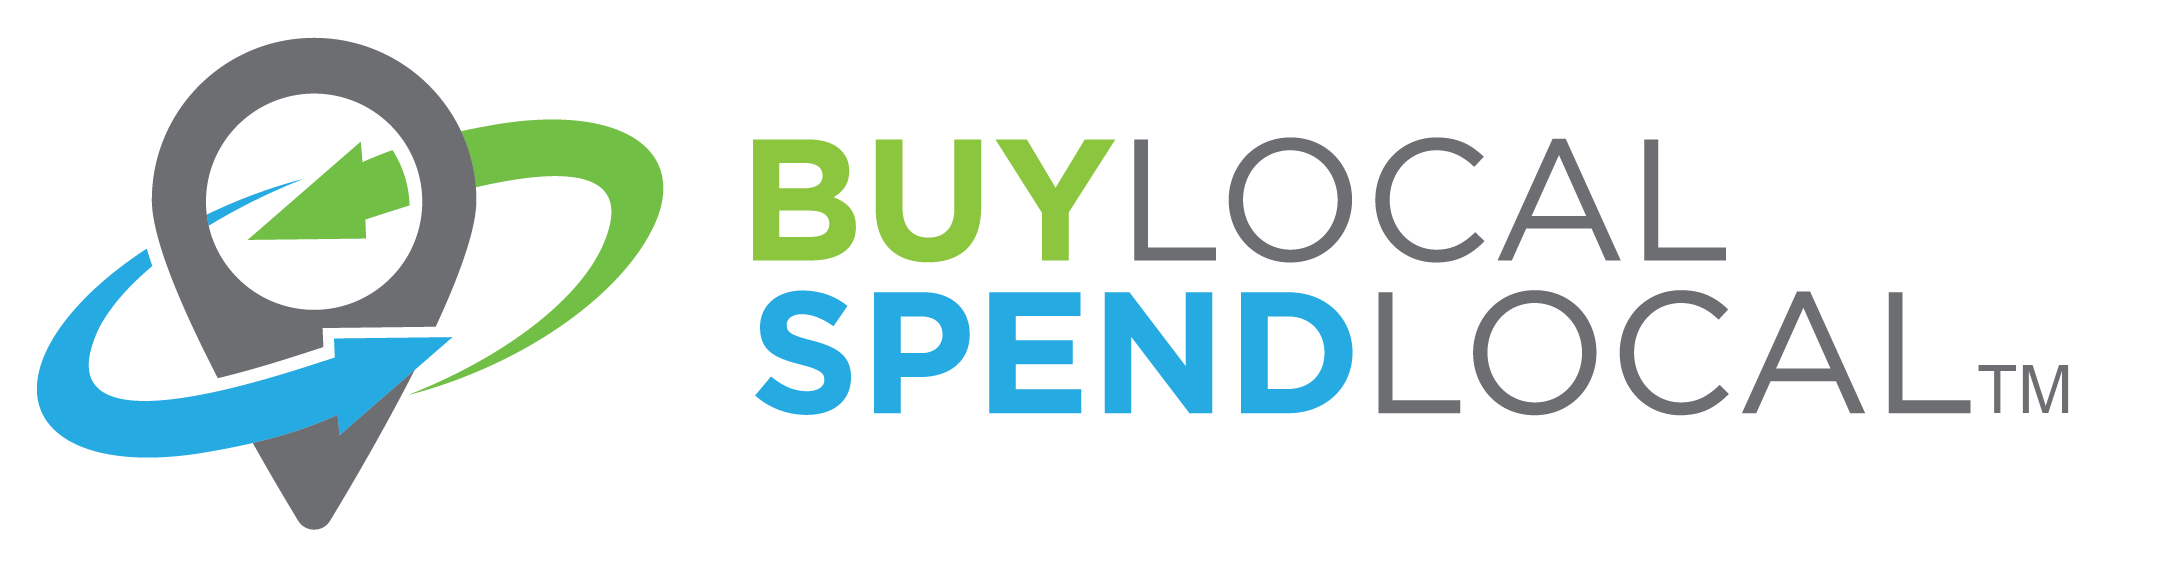 Buy Local Spend Local